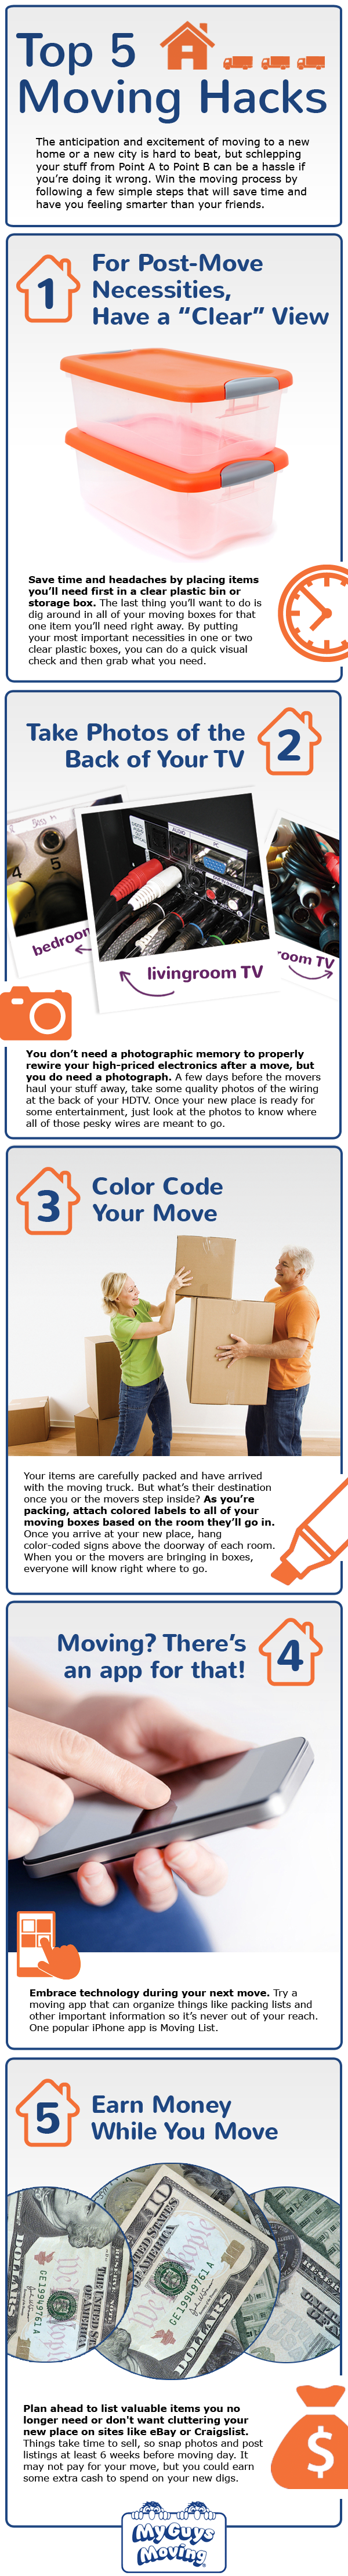 The Top 5 Moving Hacks Infographics Online